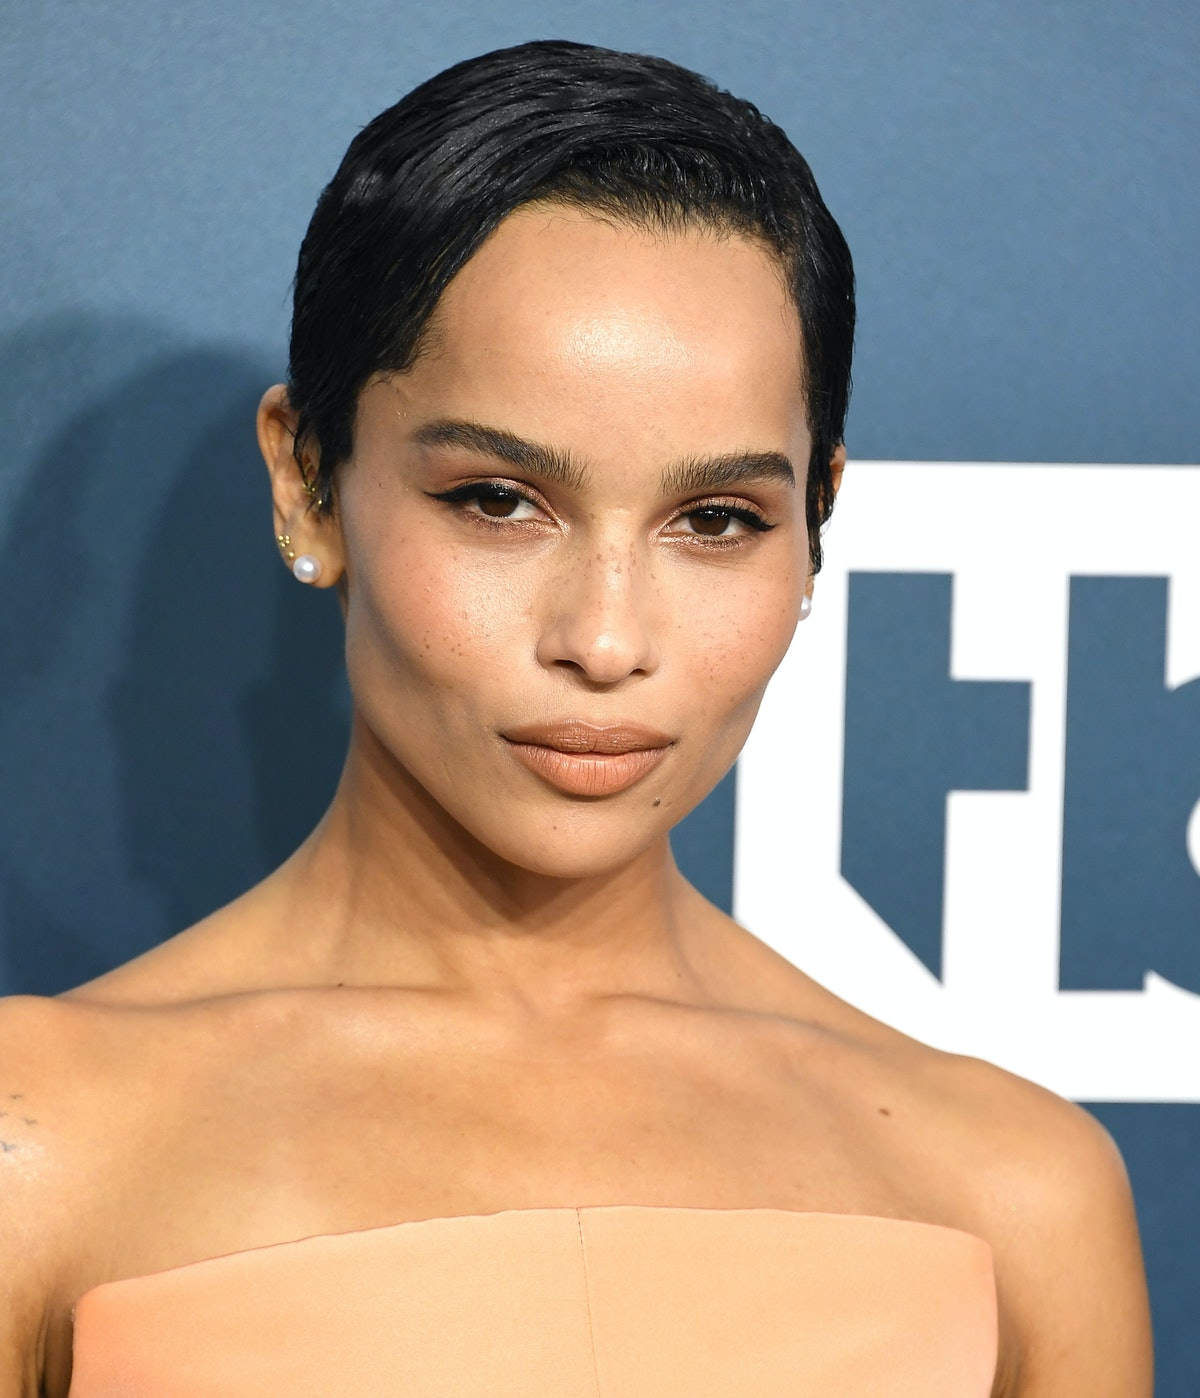 Zoë Kravitz isn't astrologically compatible with Channing Tatum.